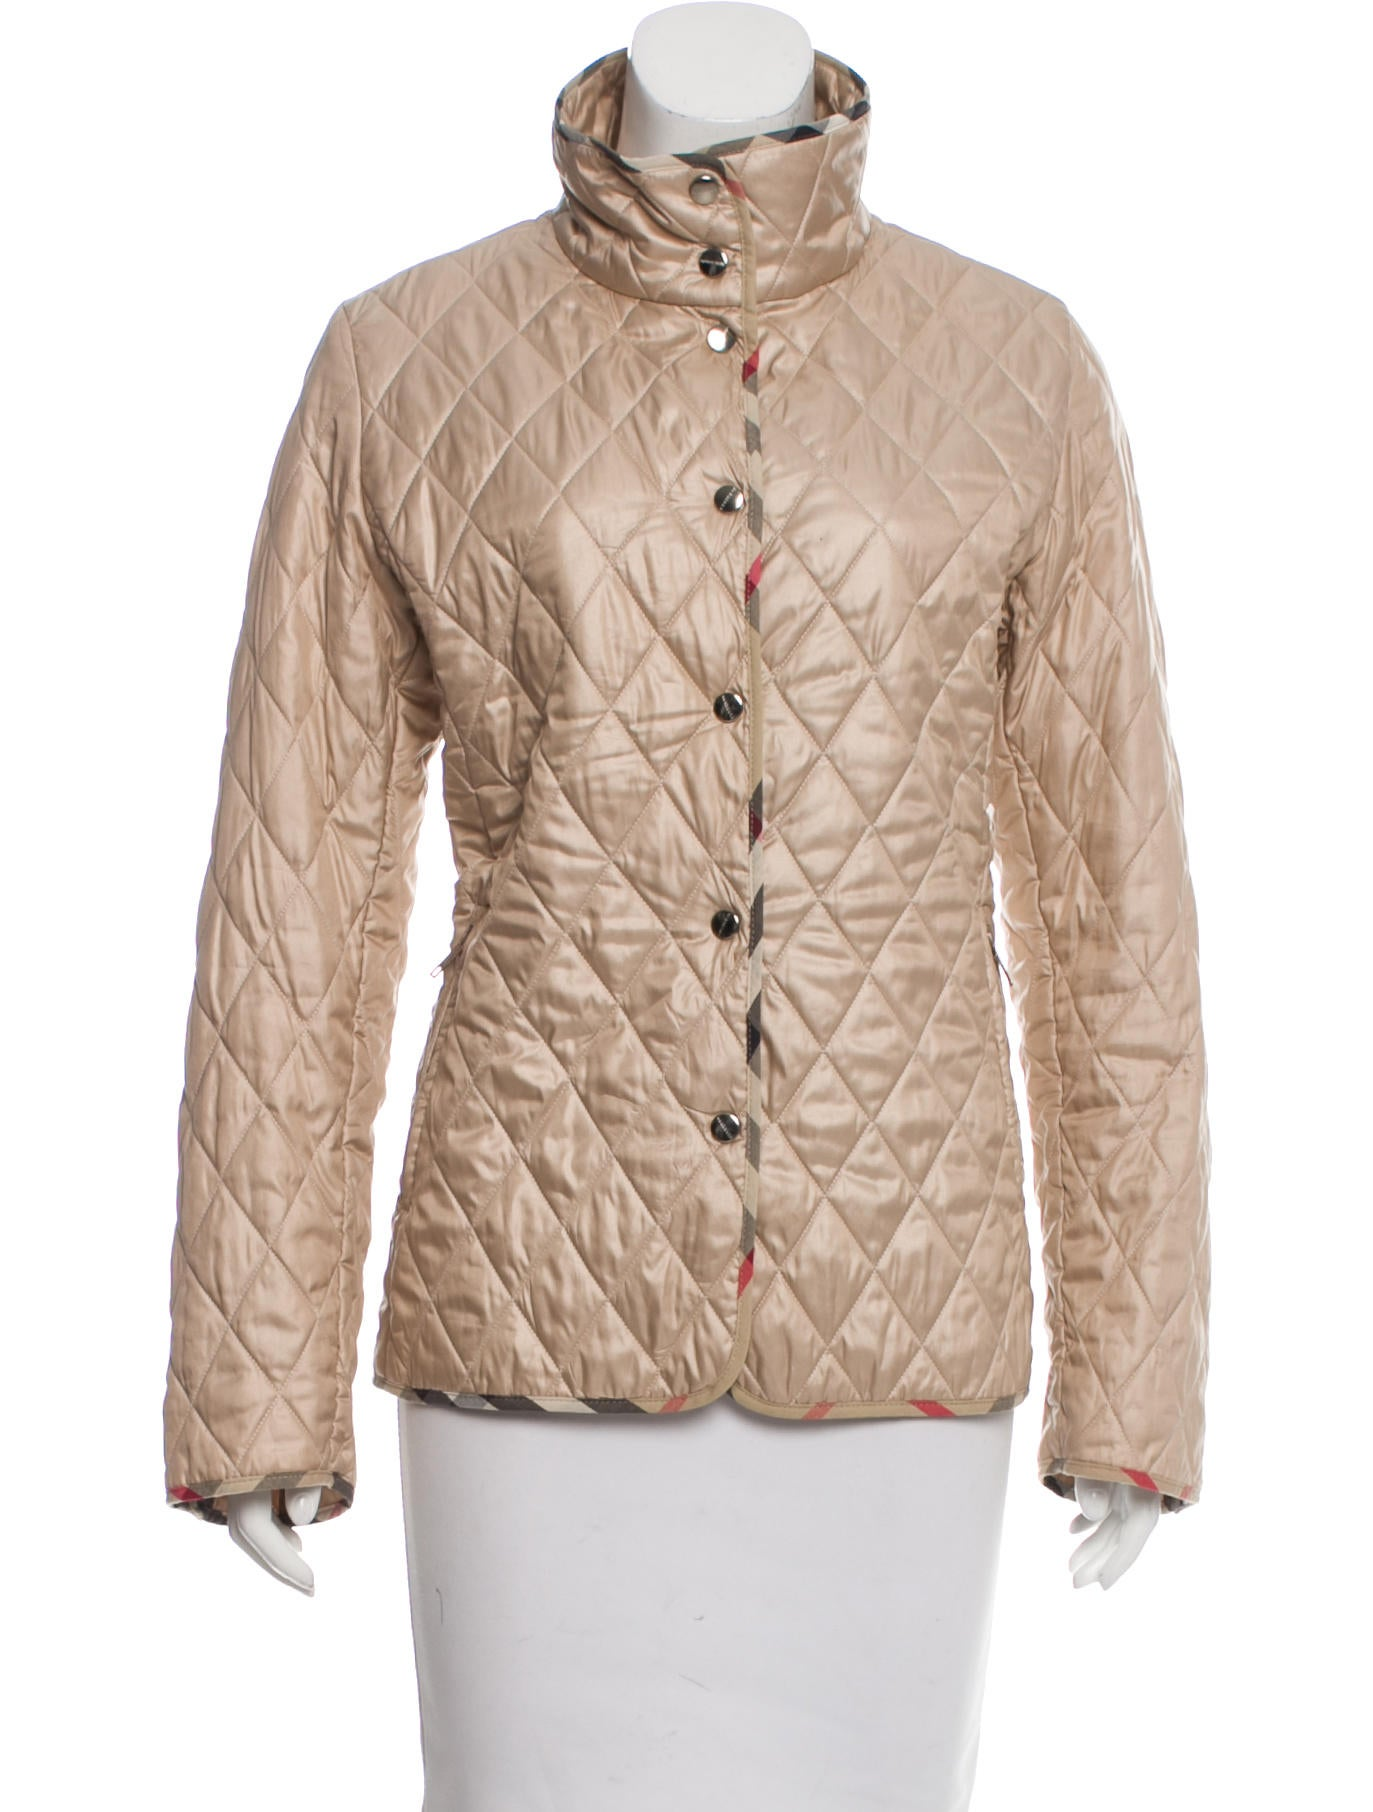 Burberry London Lightweight Quilted Jacket Clothing